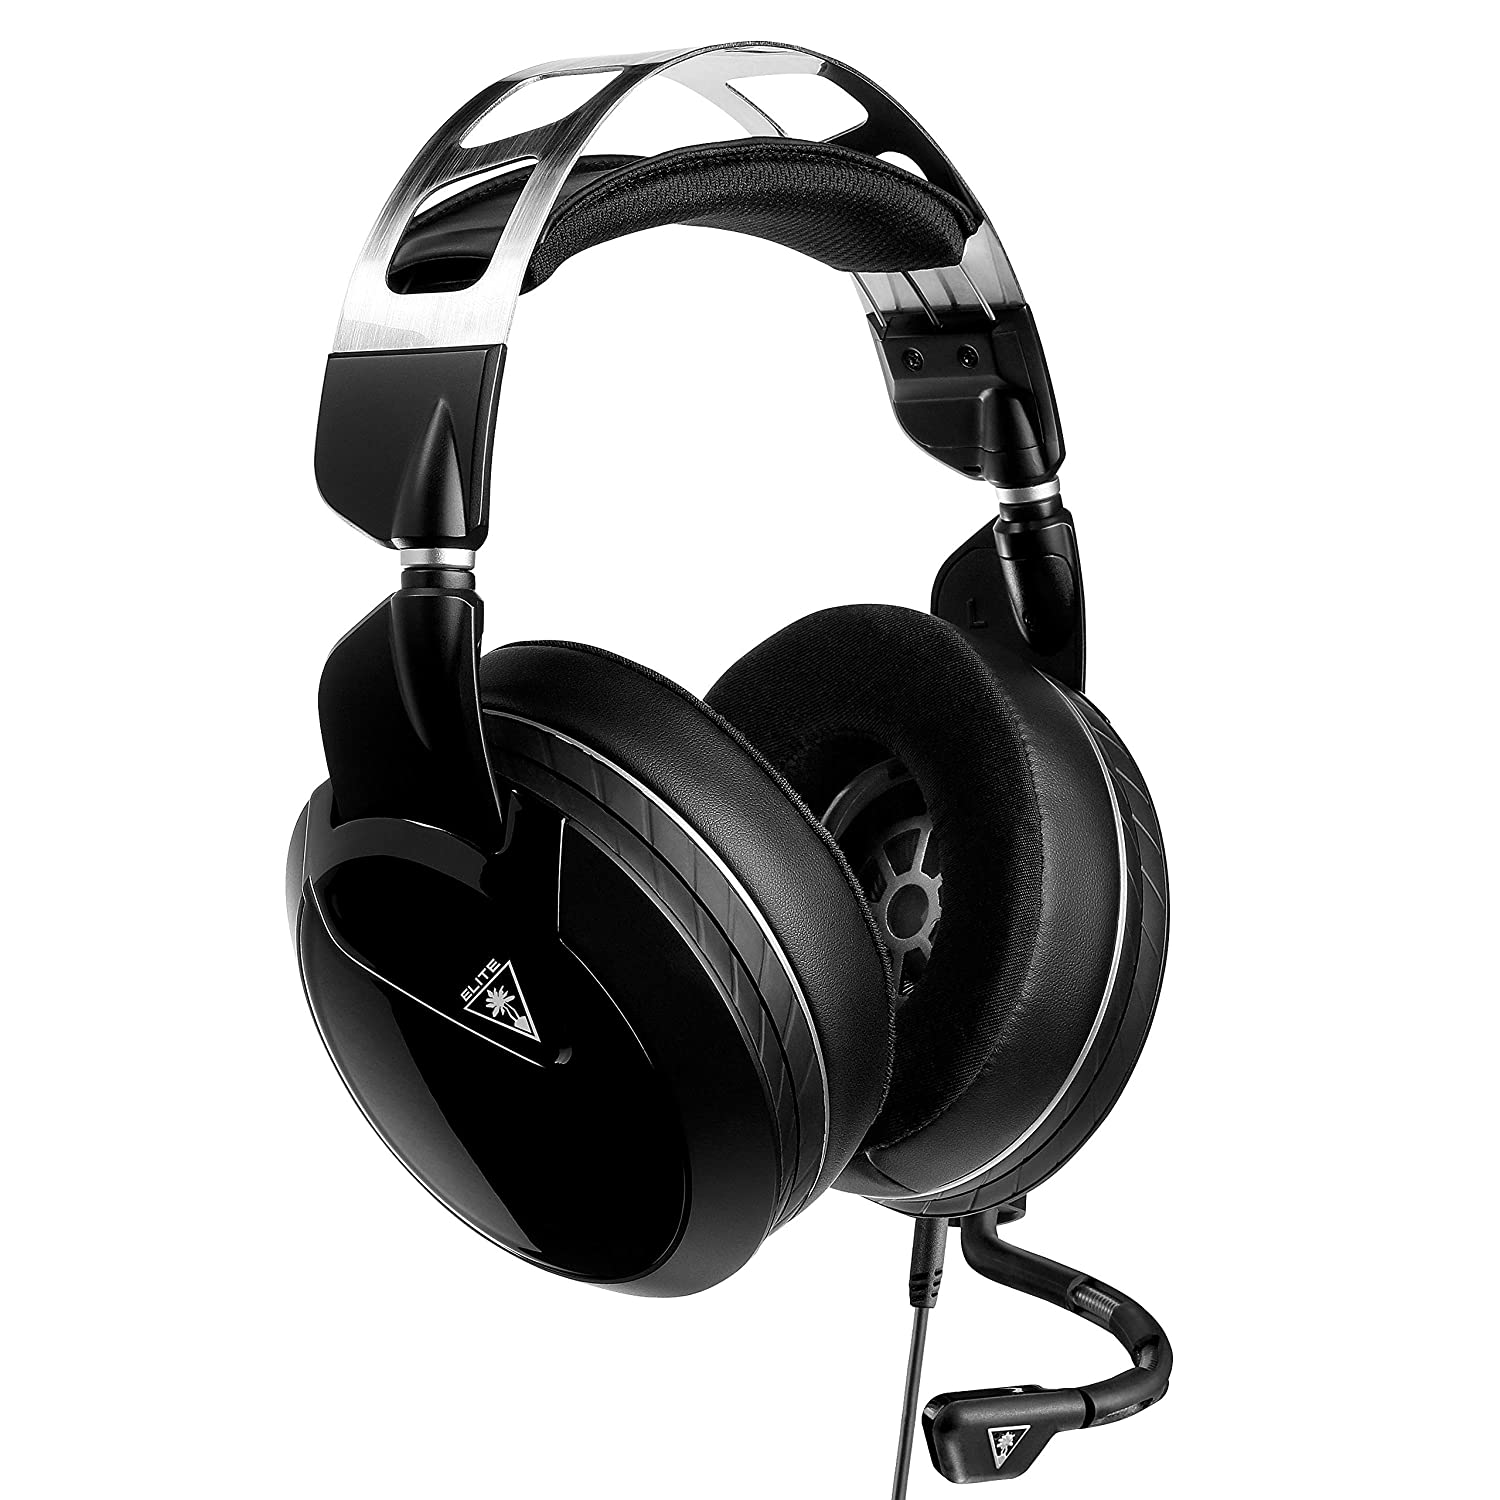 Best headset for CS:GO